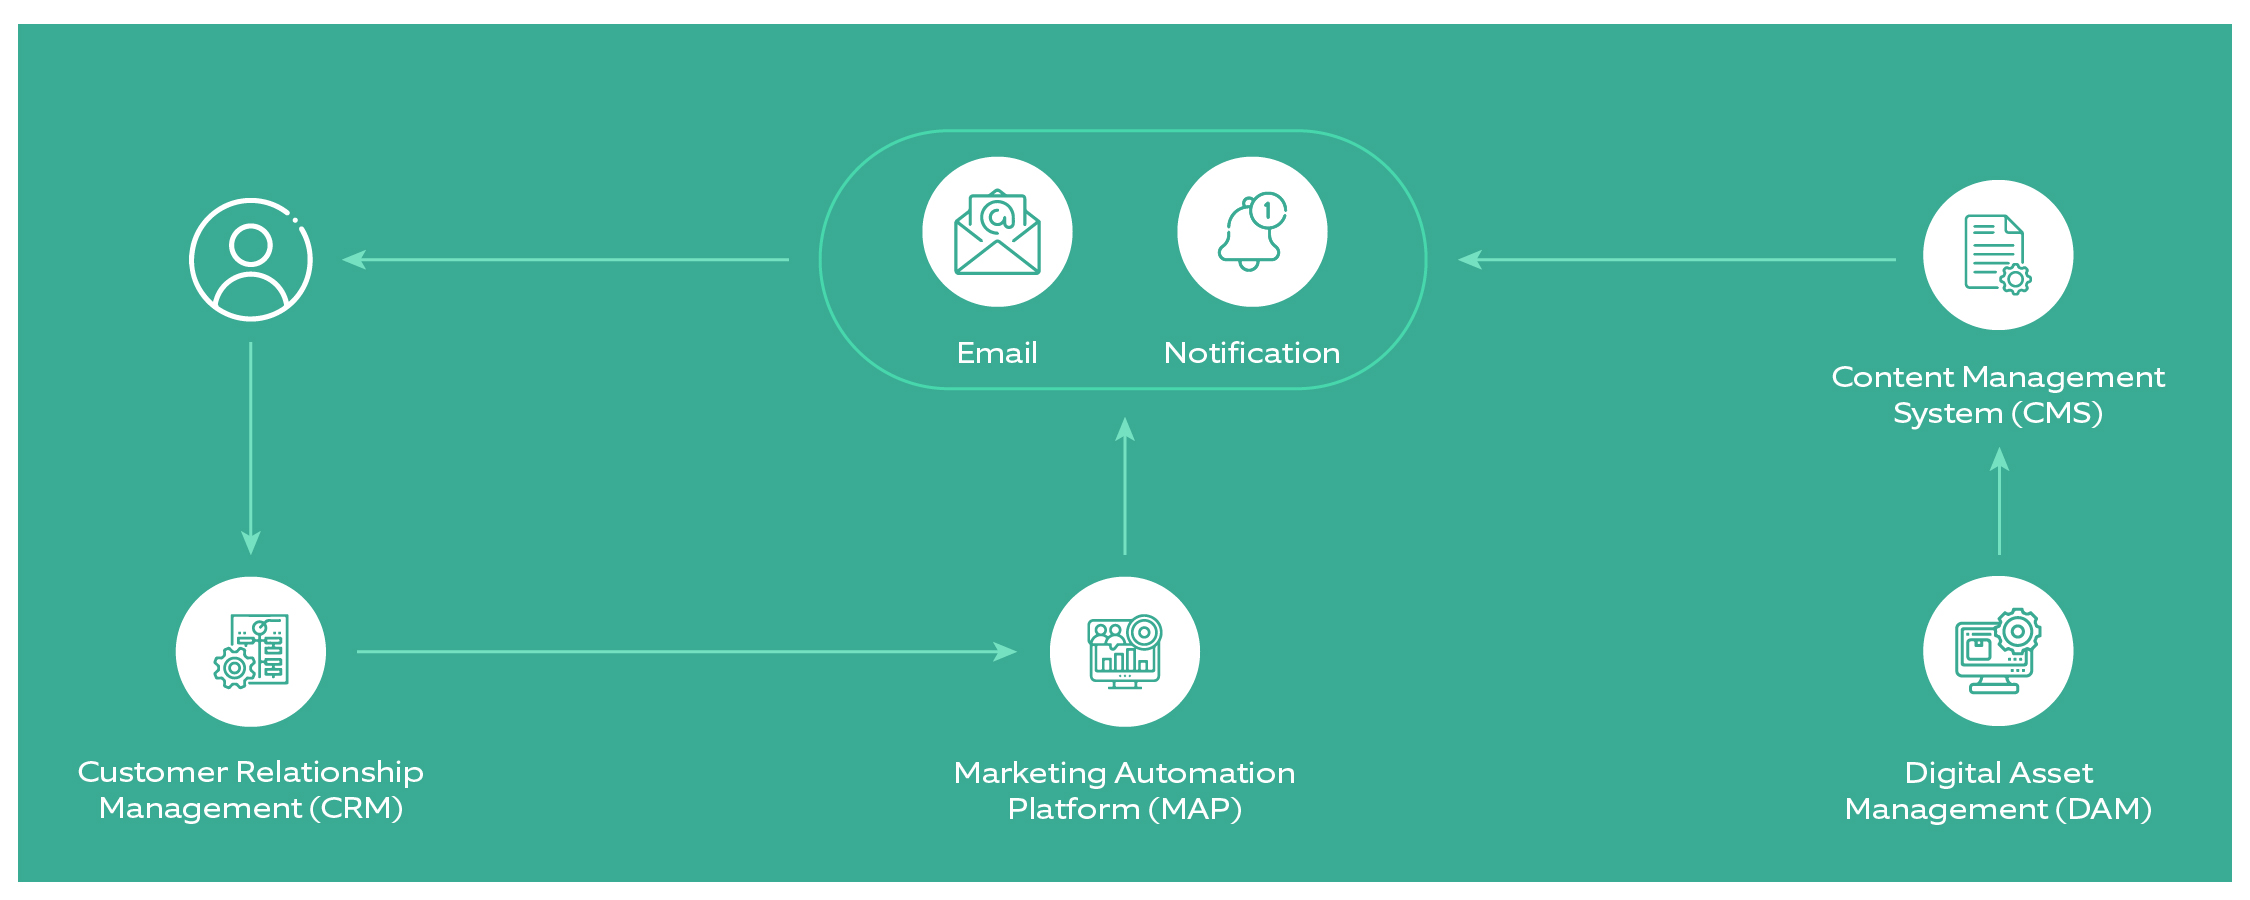 Martech - representing Audience, CRM, MAP, Marketing Tools (Email, Content, Mobile, Search and Social) and CMS/DAM